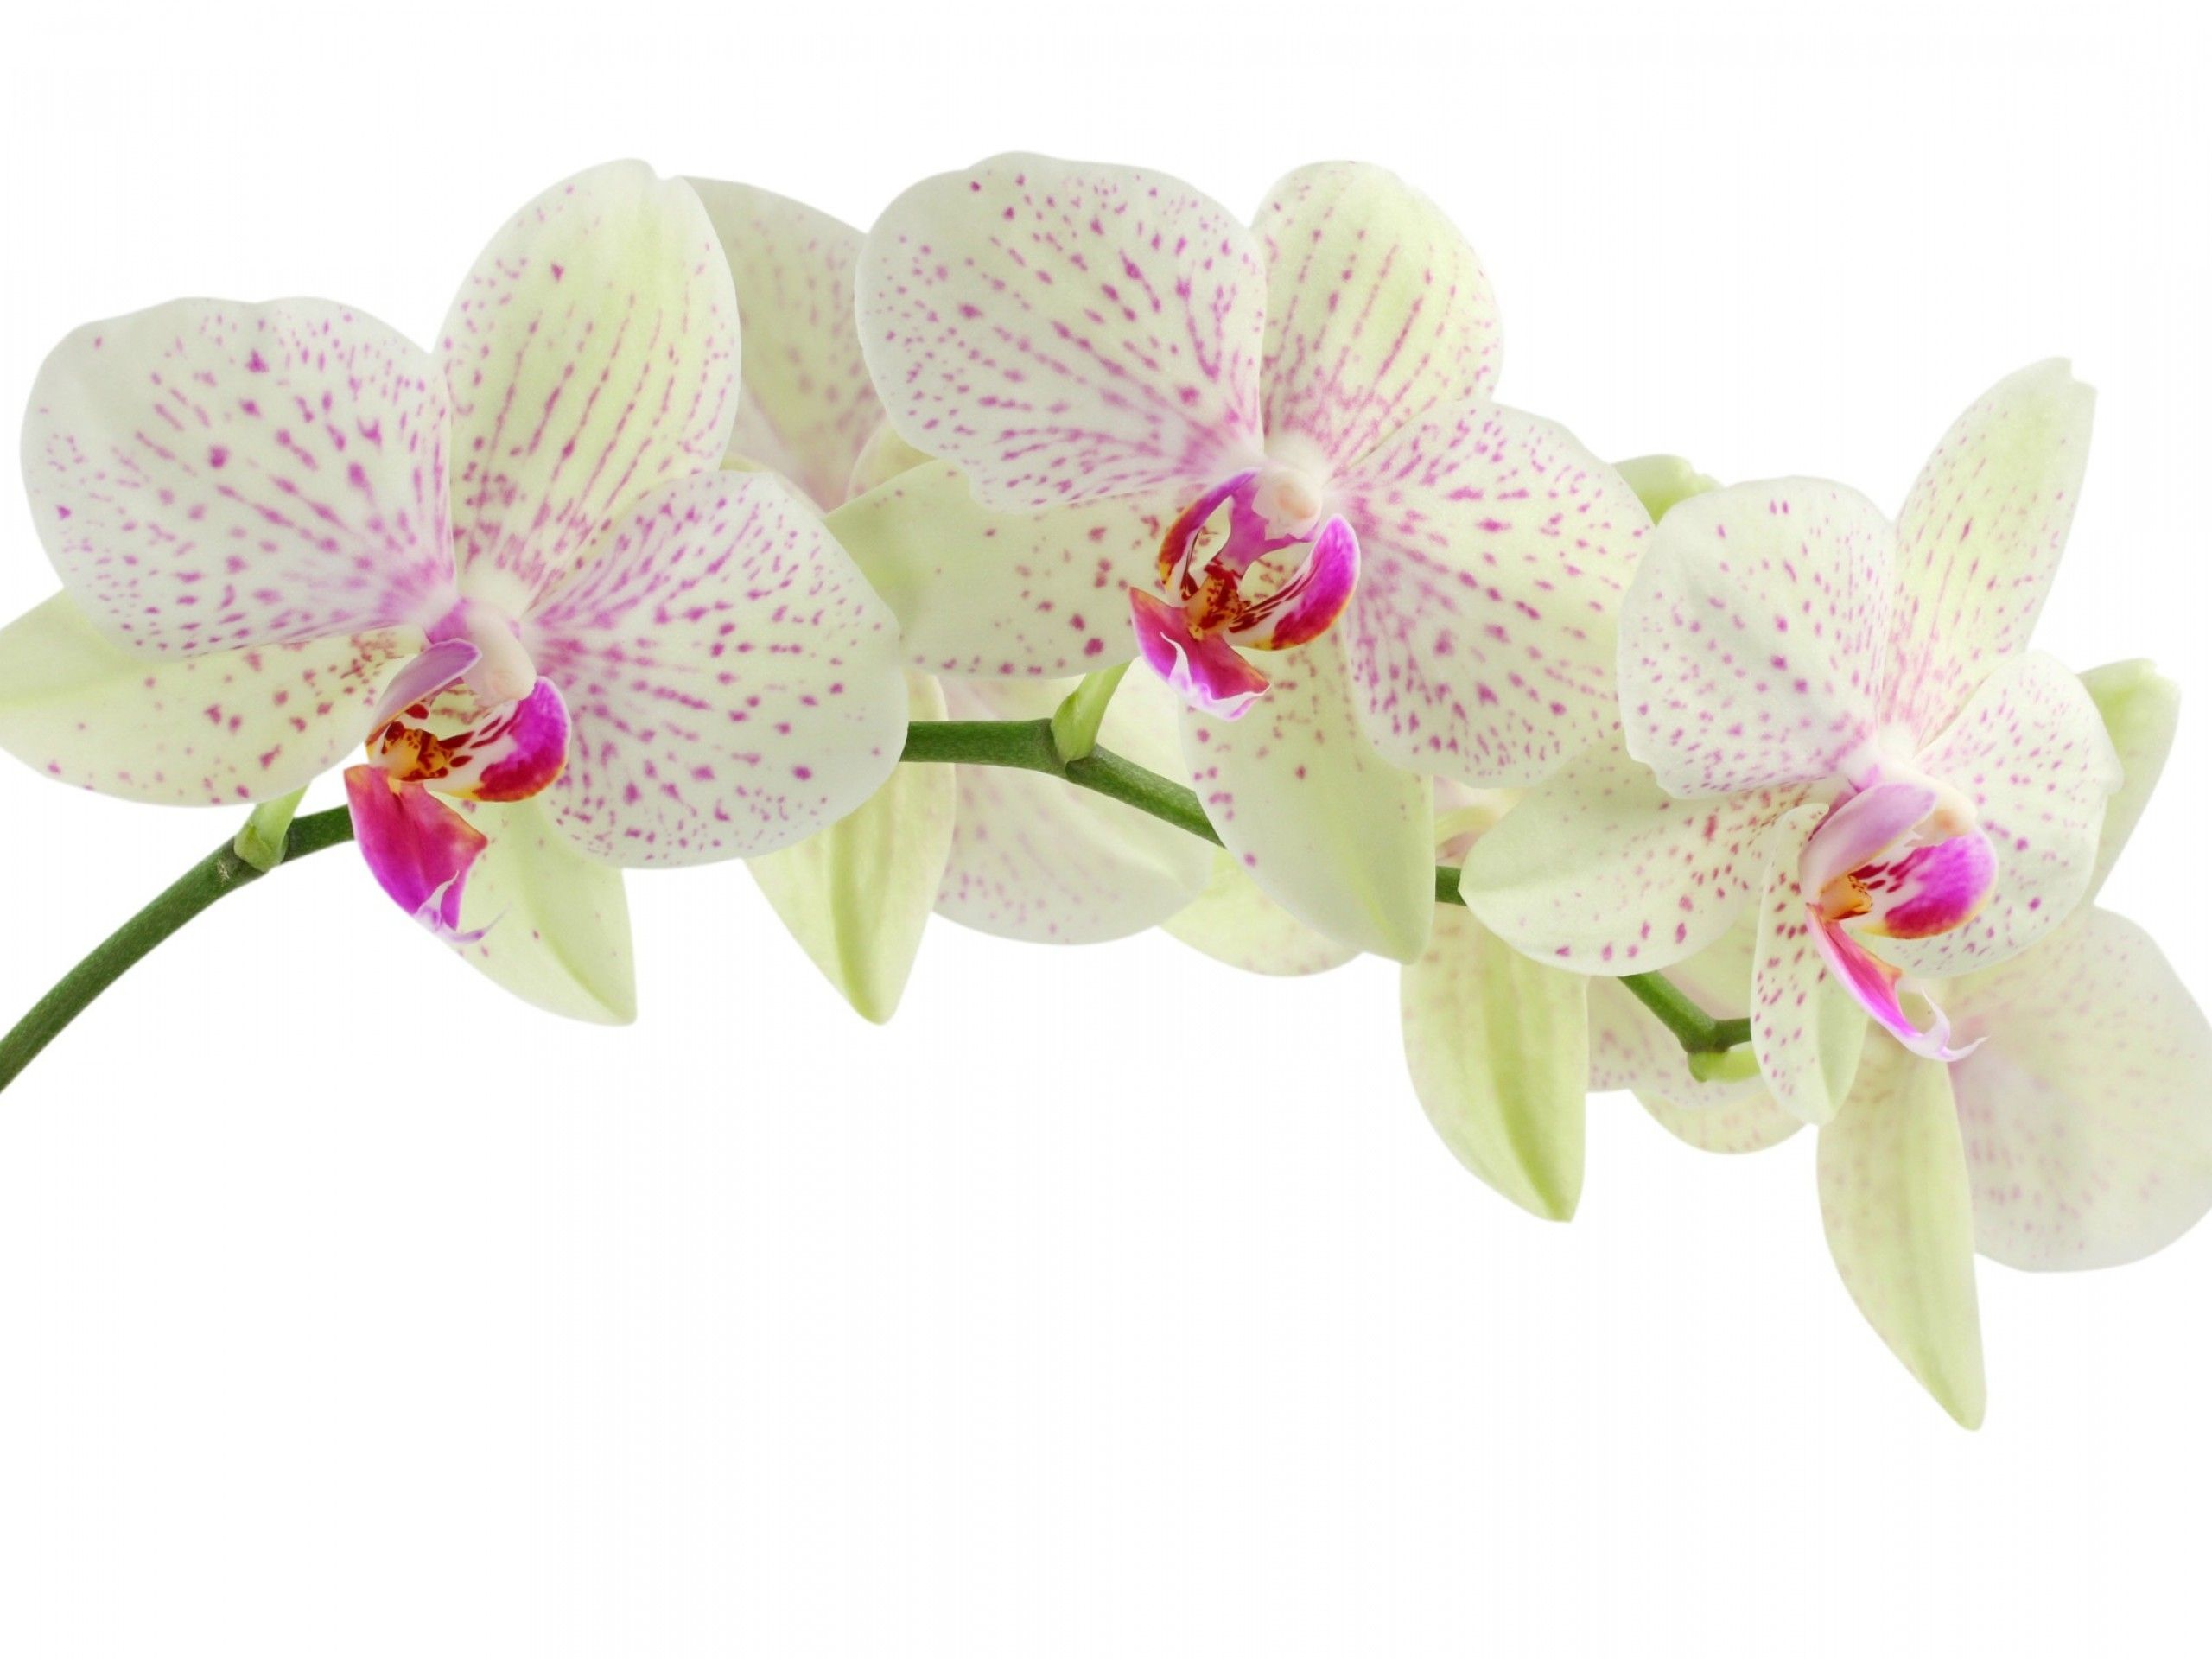 White Orchids Flowers Orchid Flower Orchid Wallpaper Flower Wallpaper